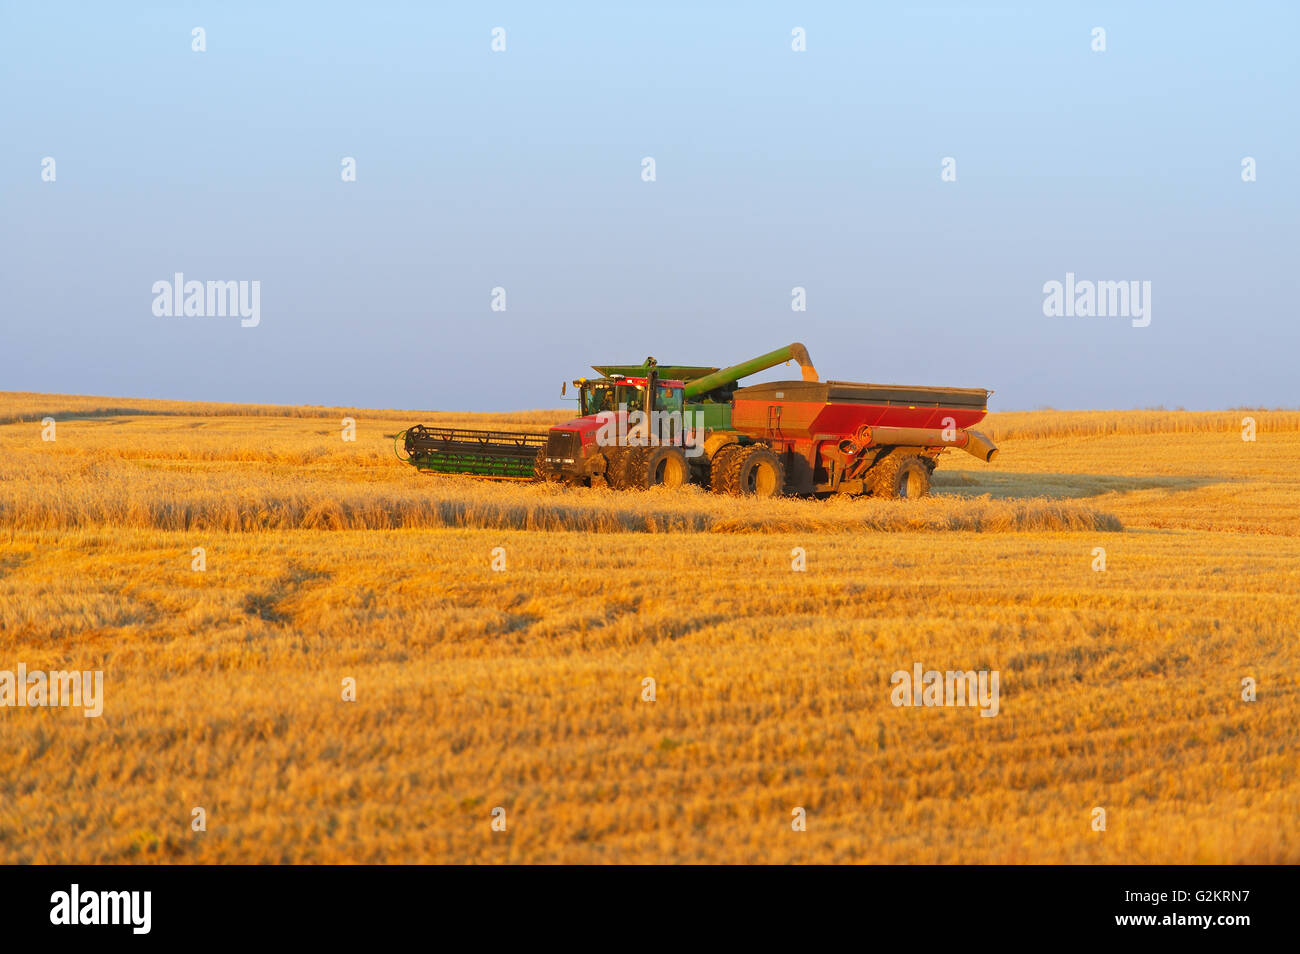 Unloading wheat (var. Infinity) into grain cart north of Grenfell Saskatchewan Canada - Stock Image